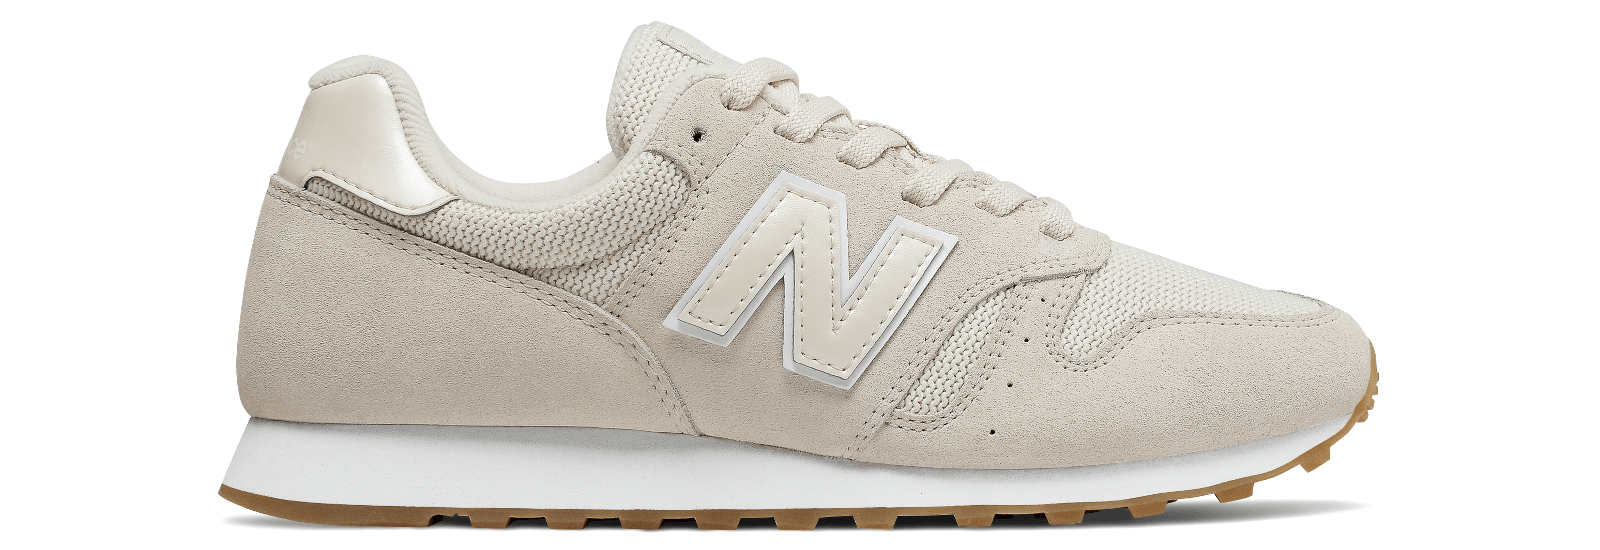 ddac51af0 New Balance WL373WCG in 2019 | Personal Style: SS19 shopping | New ...